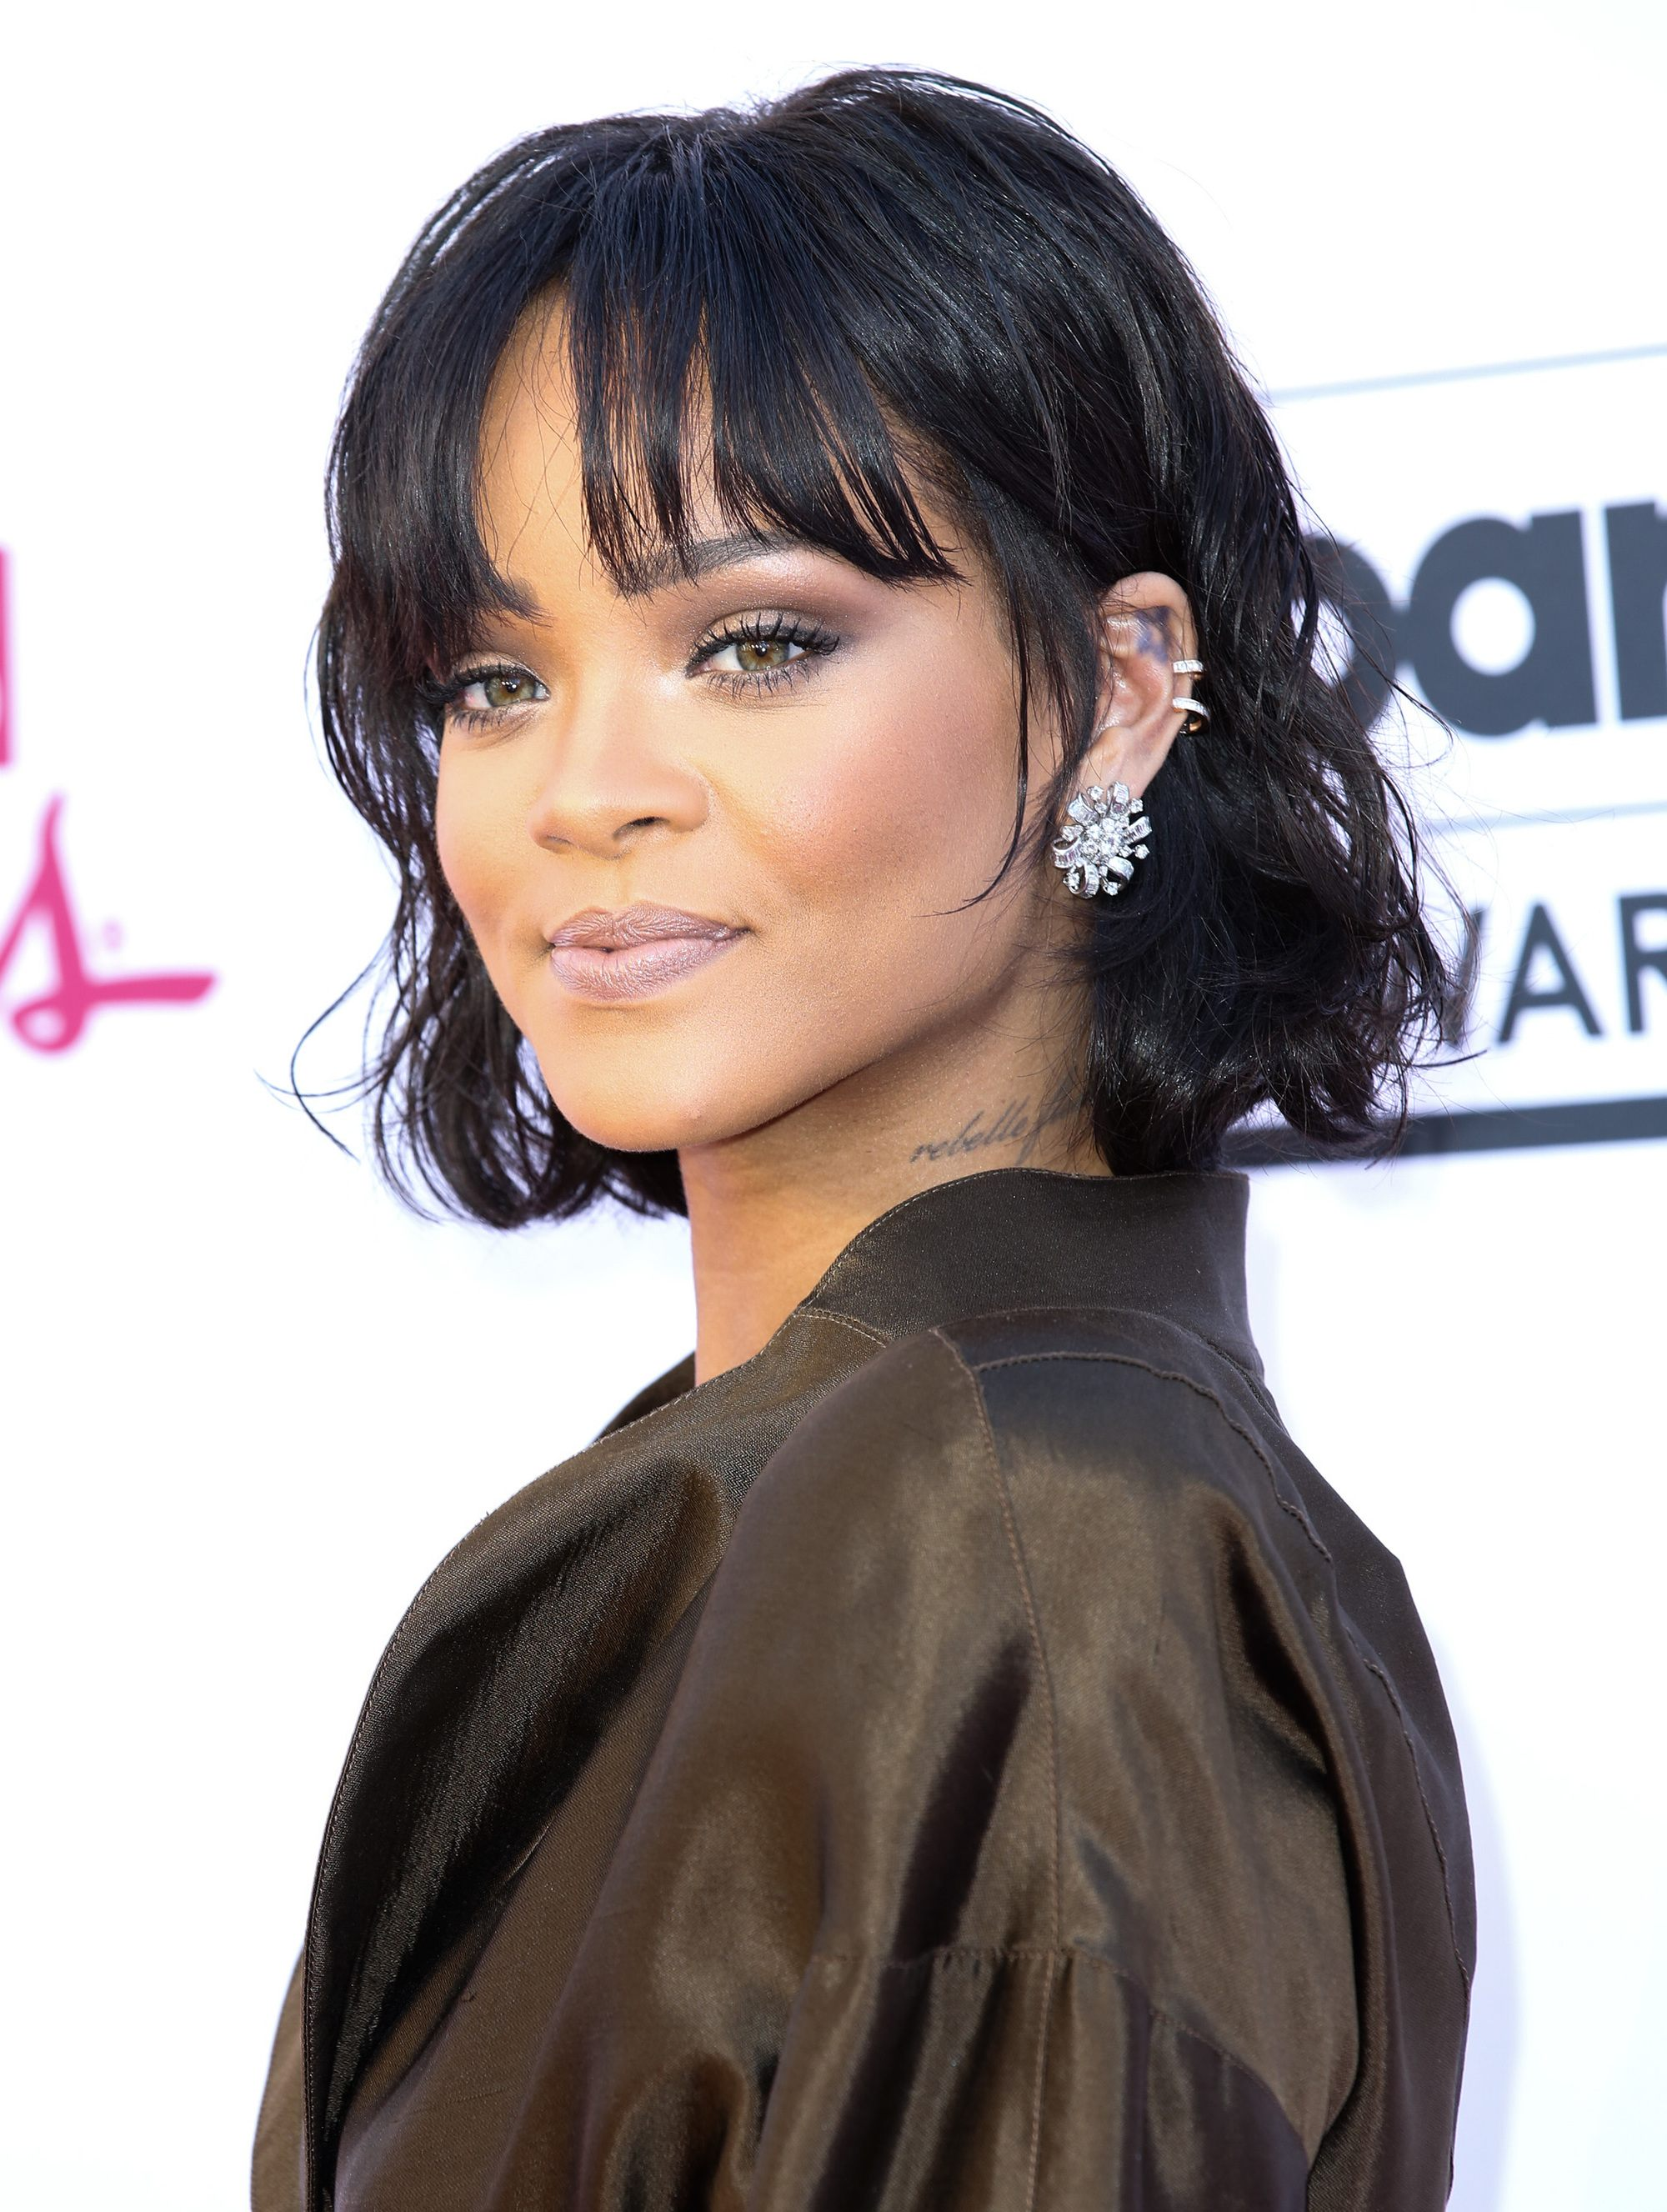 21 Easy Hairstyles For Short Curly Hair